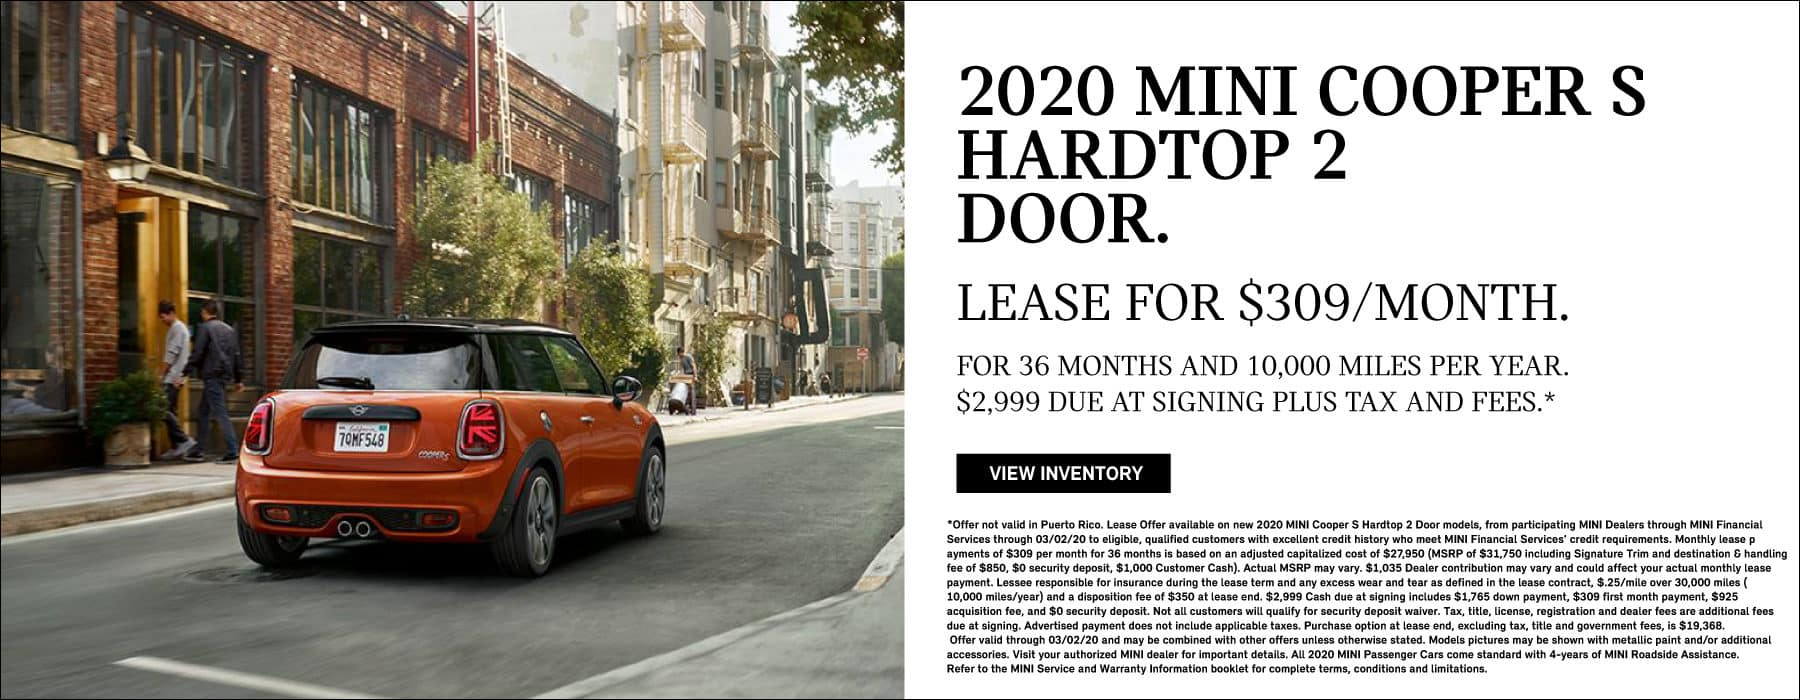 2020 MINI COOPER S HARDTOP 2 DOOR. Lease for $309/month. For 36 months and 10,000 miles per year. $2,999 due at signing plus tax and fees. *See dealer for complete details.